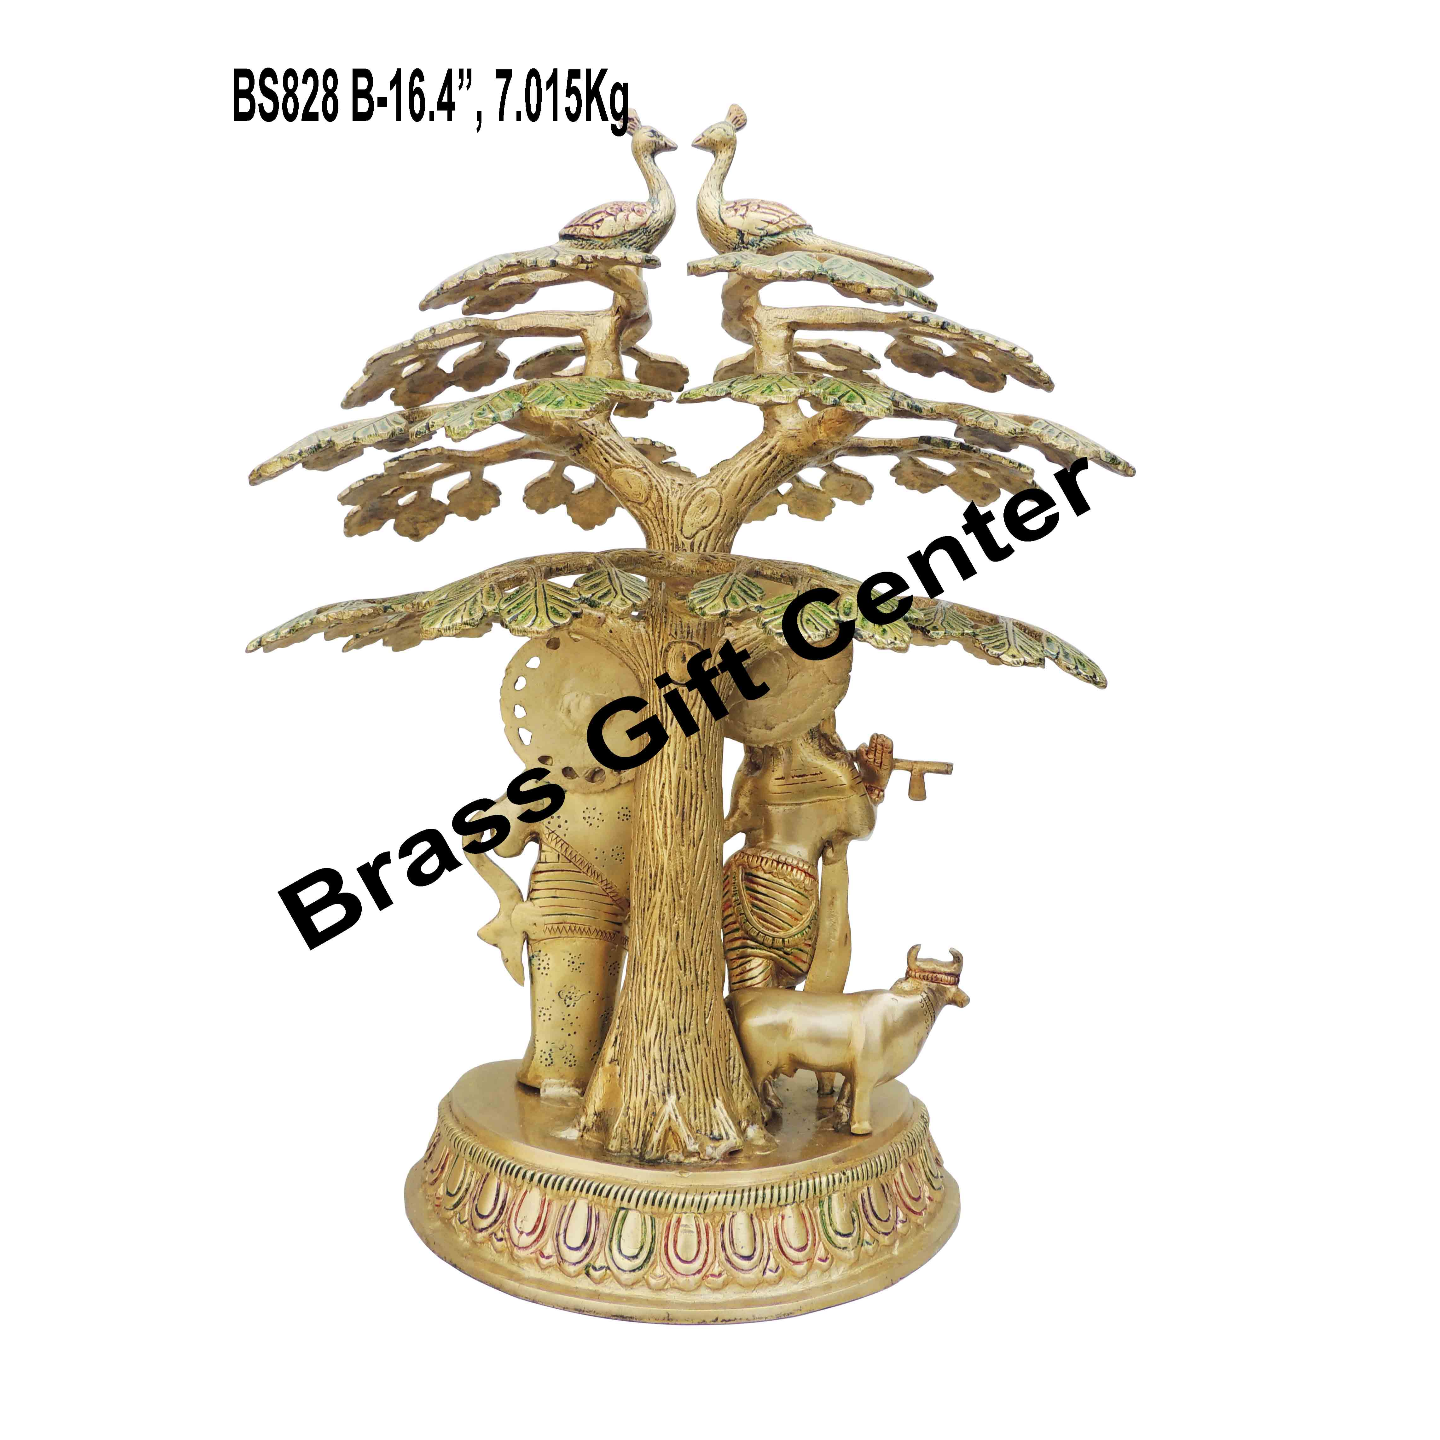 Brass Radha Krishna Under Tree Staute Idol Murti in Multicolour lacquer finish - 11.58.516.4 Inch  BS828 B